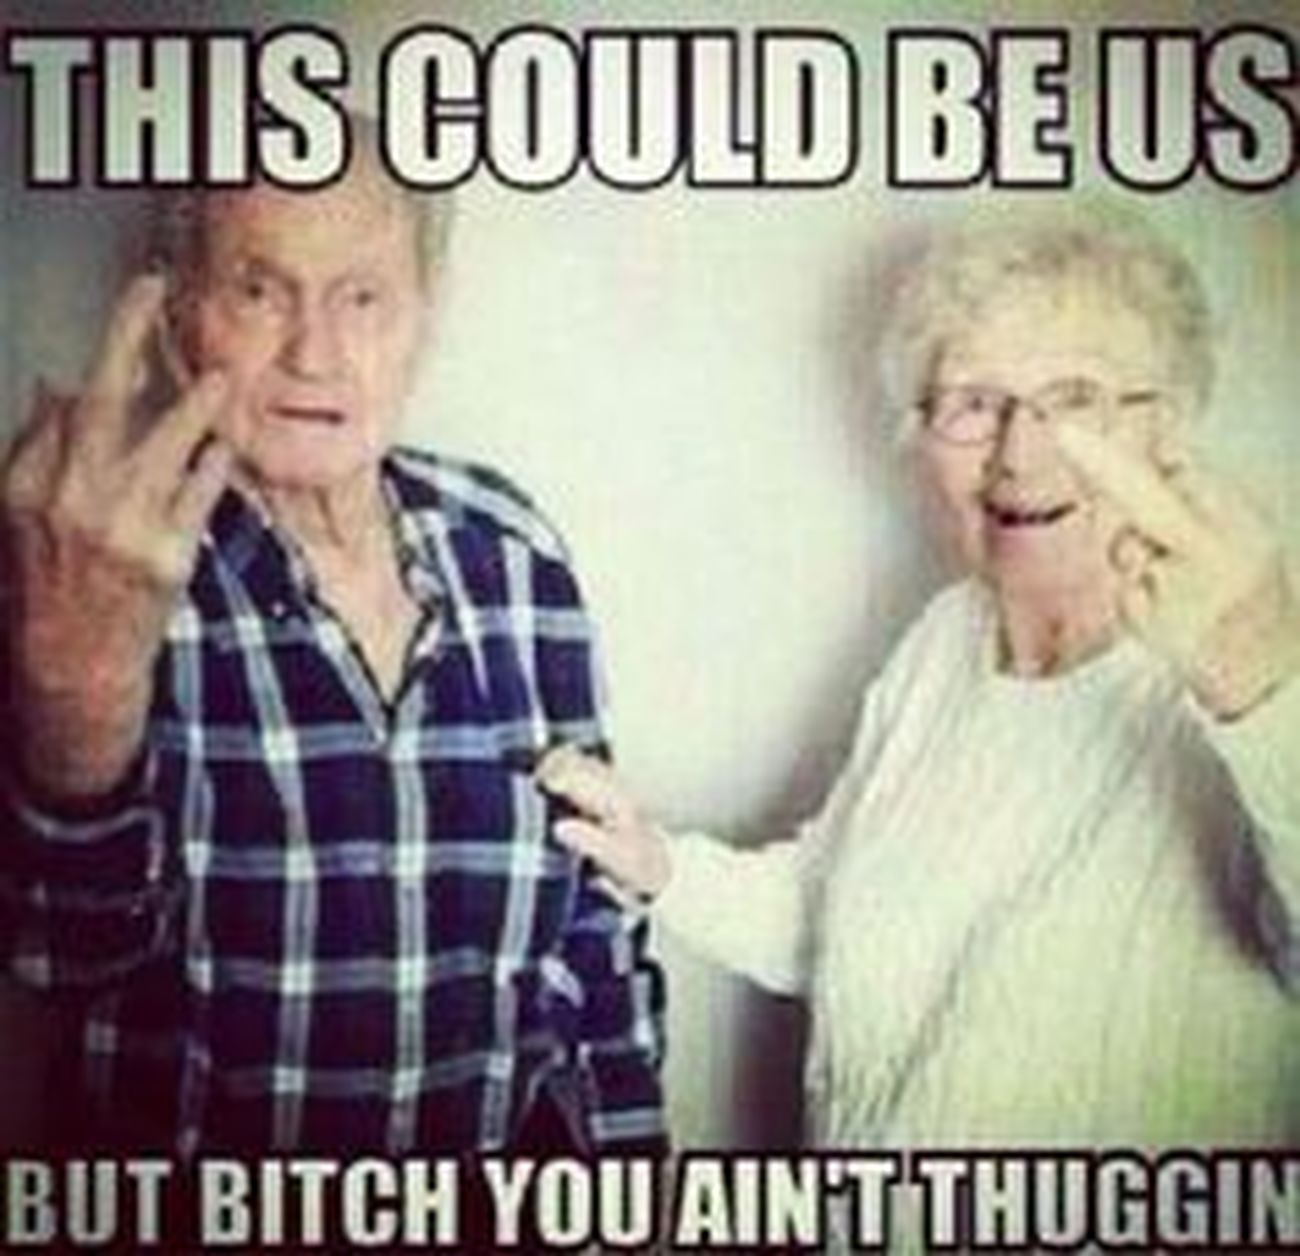 ❤ Thuggin' Thug Love This Could Be Us Ain't No Wifey